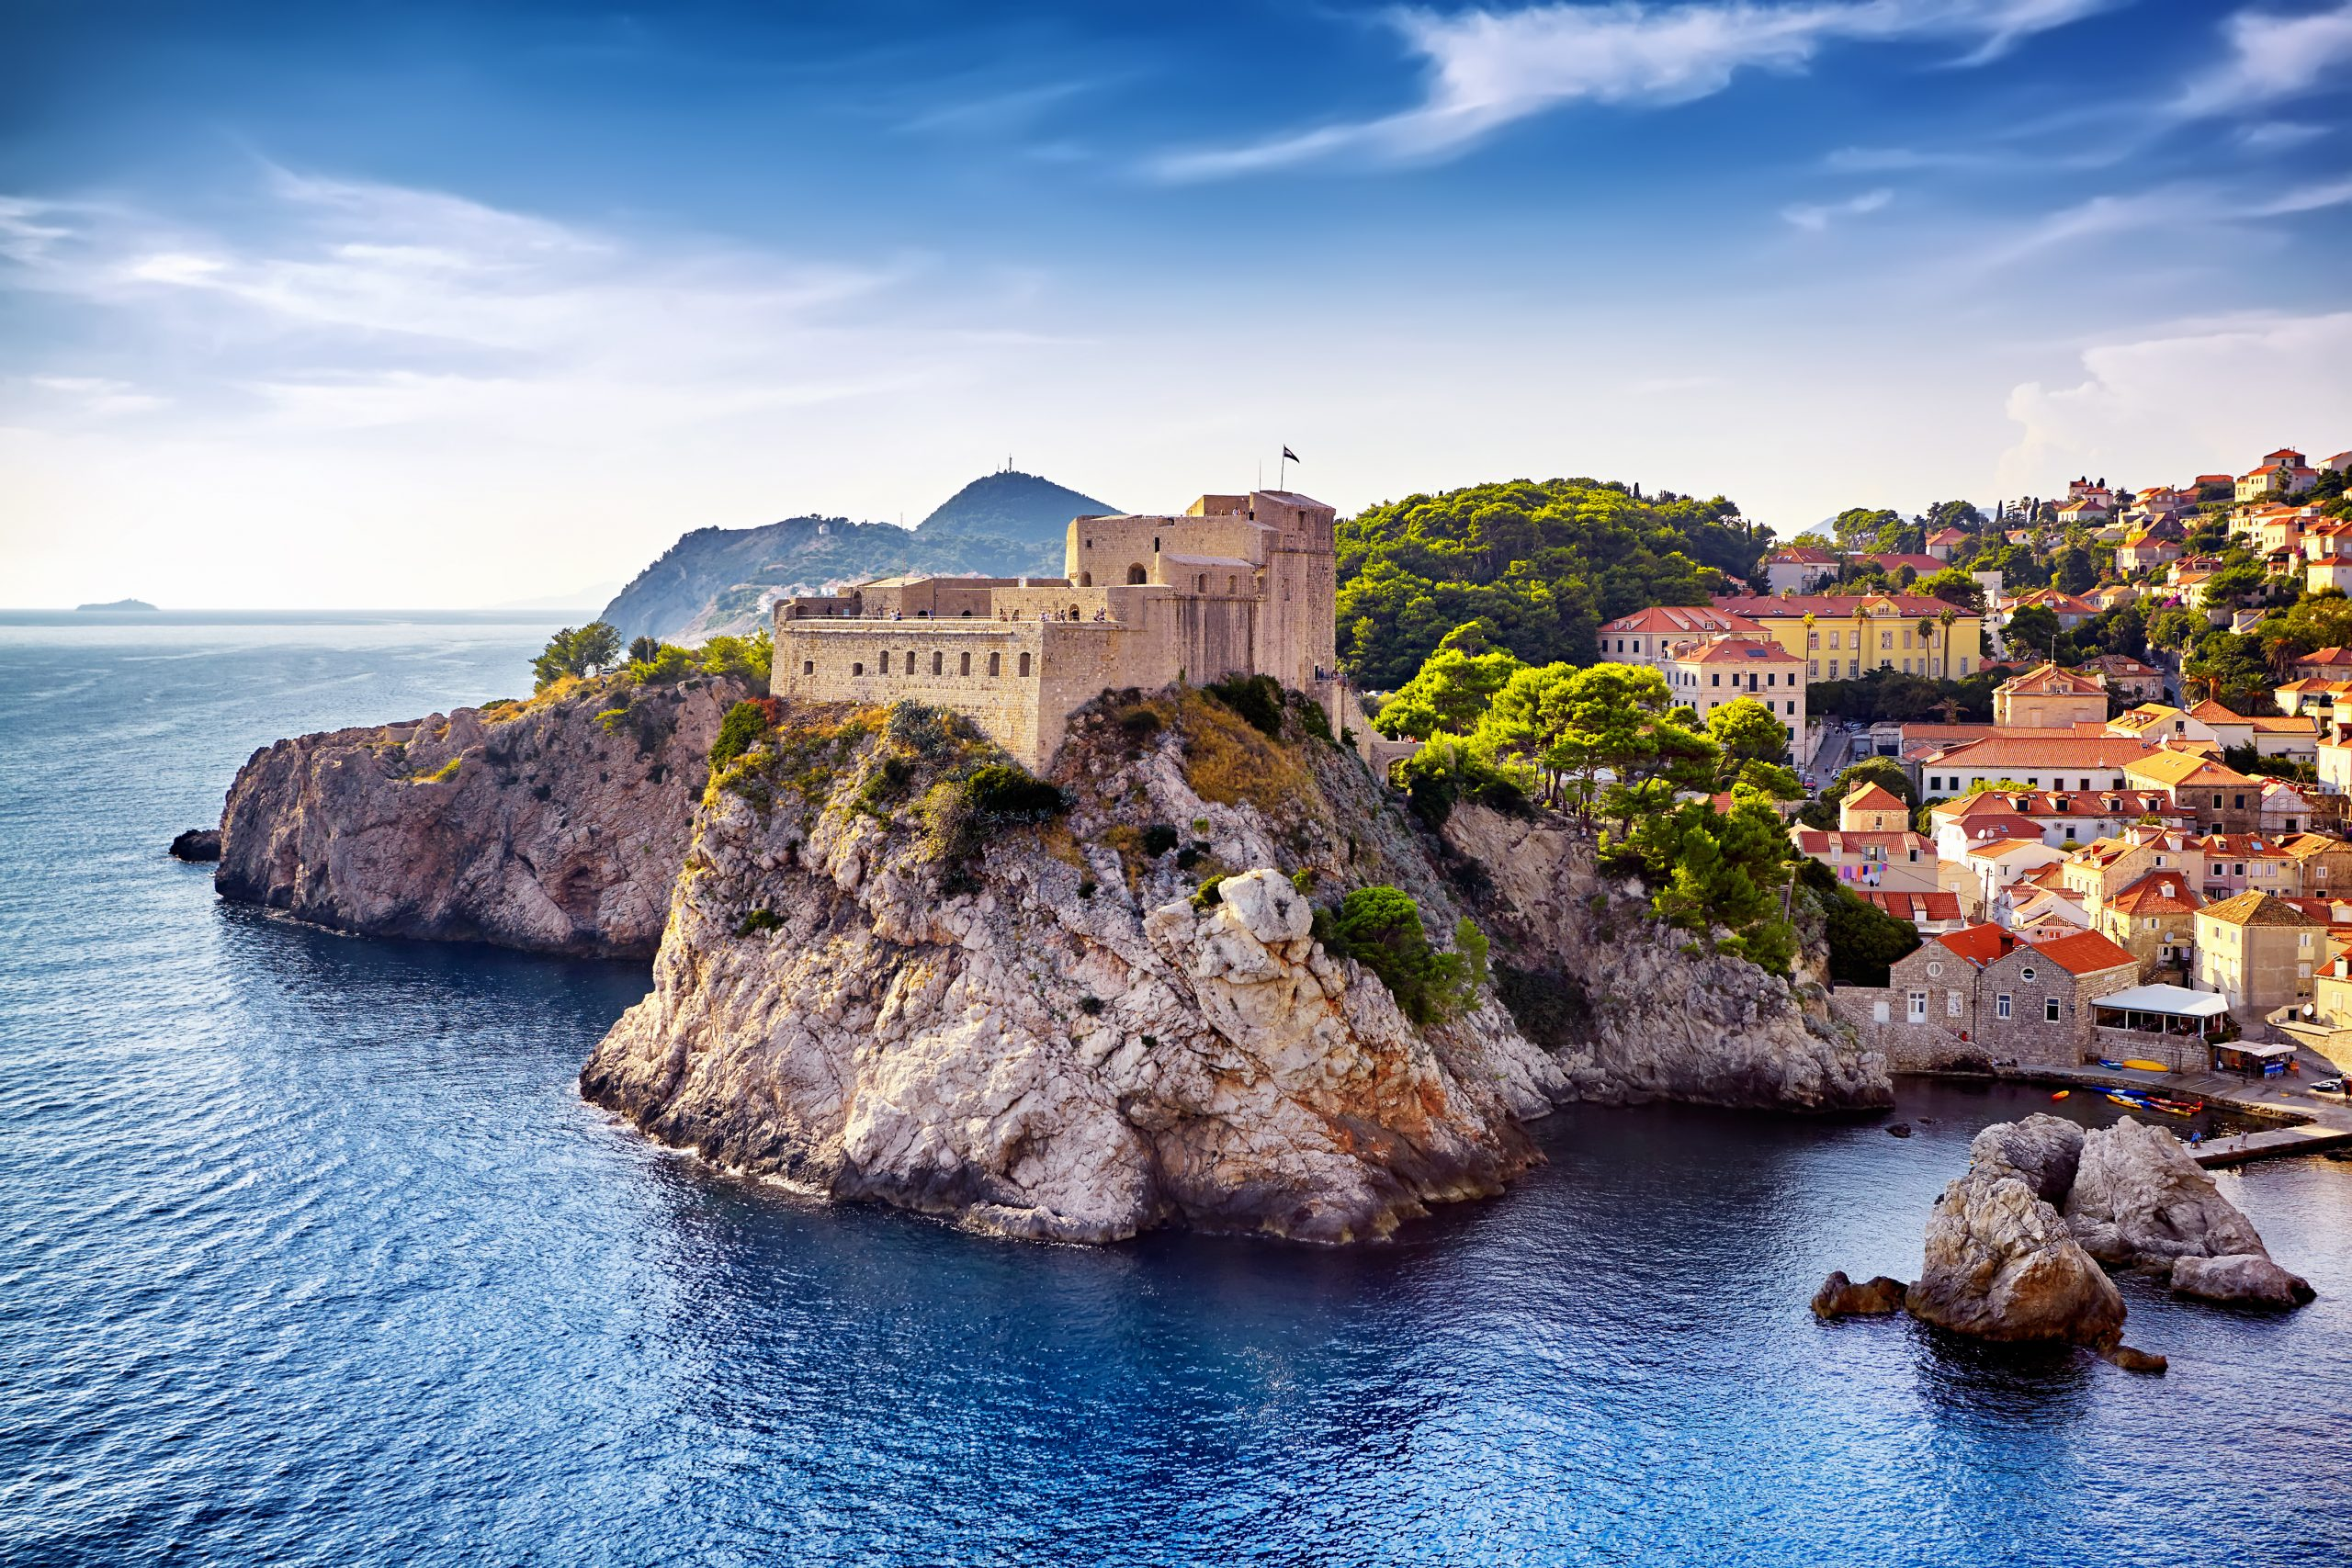 Visit Lovrijenac Fortress, Known As Red Keep For Got Fans, On Your Dubrovnik Game Of Thrones And History Tour